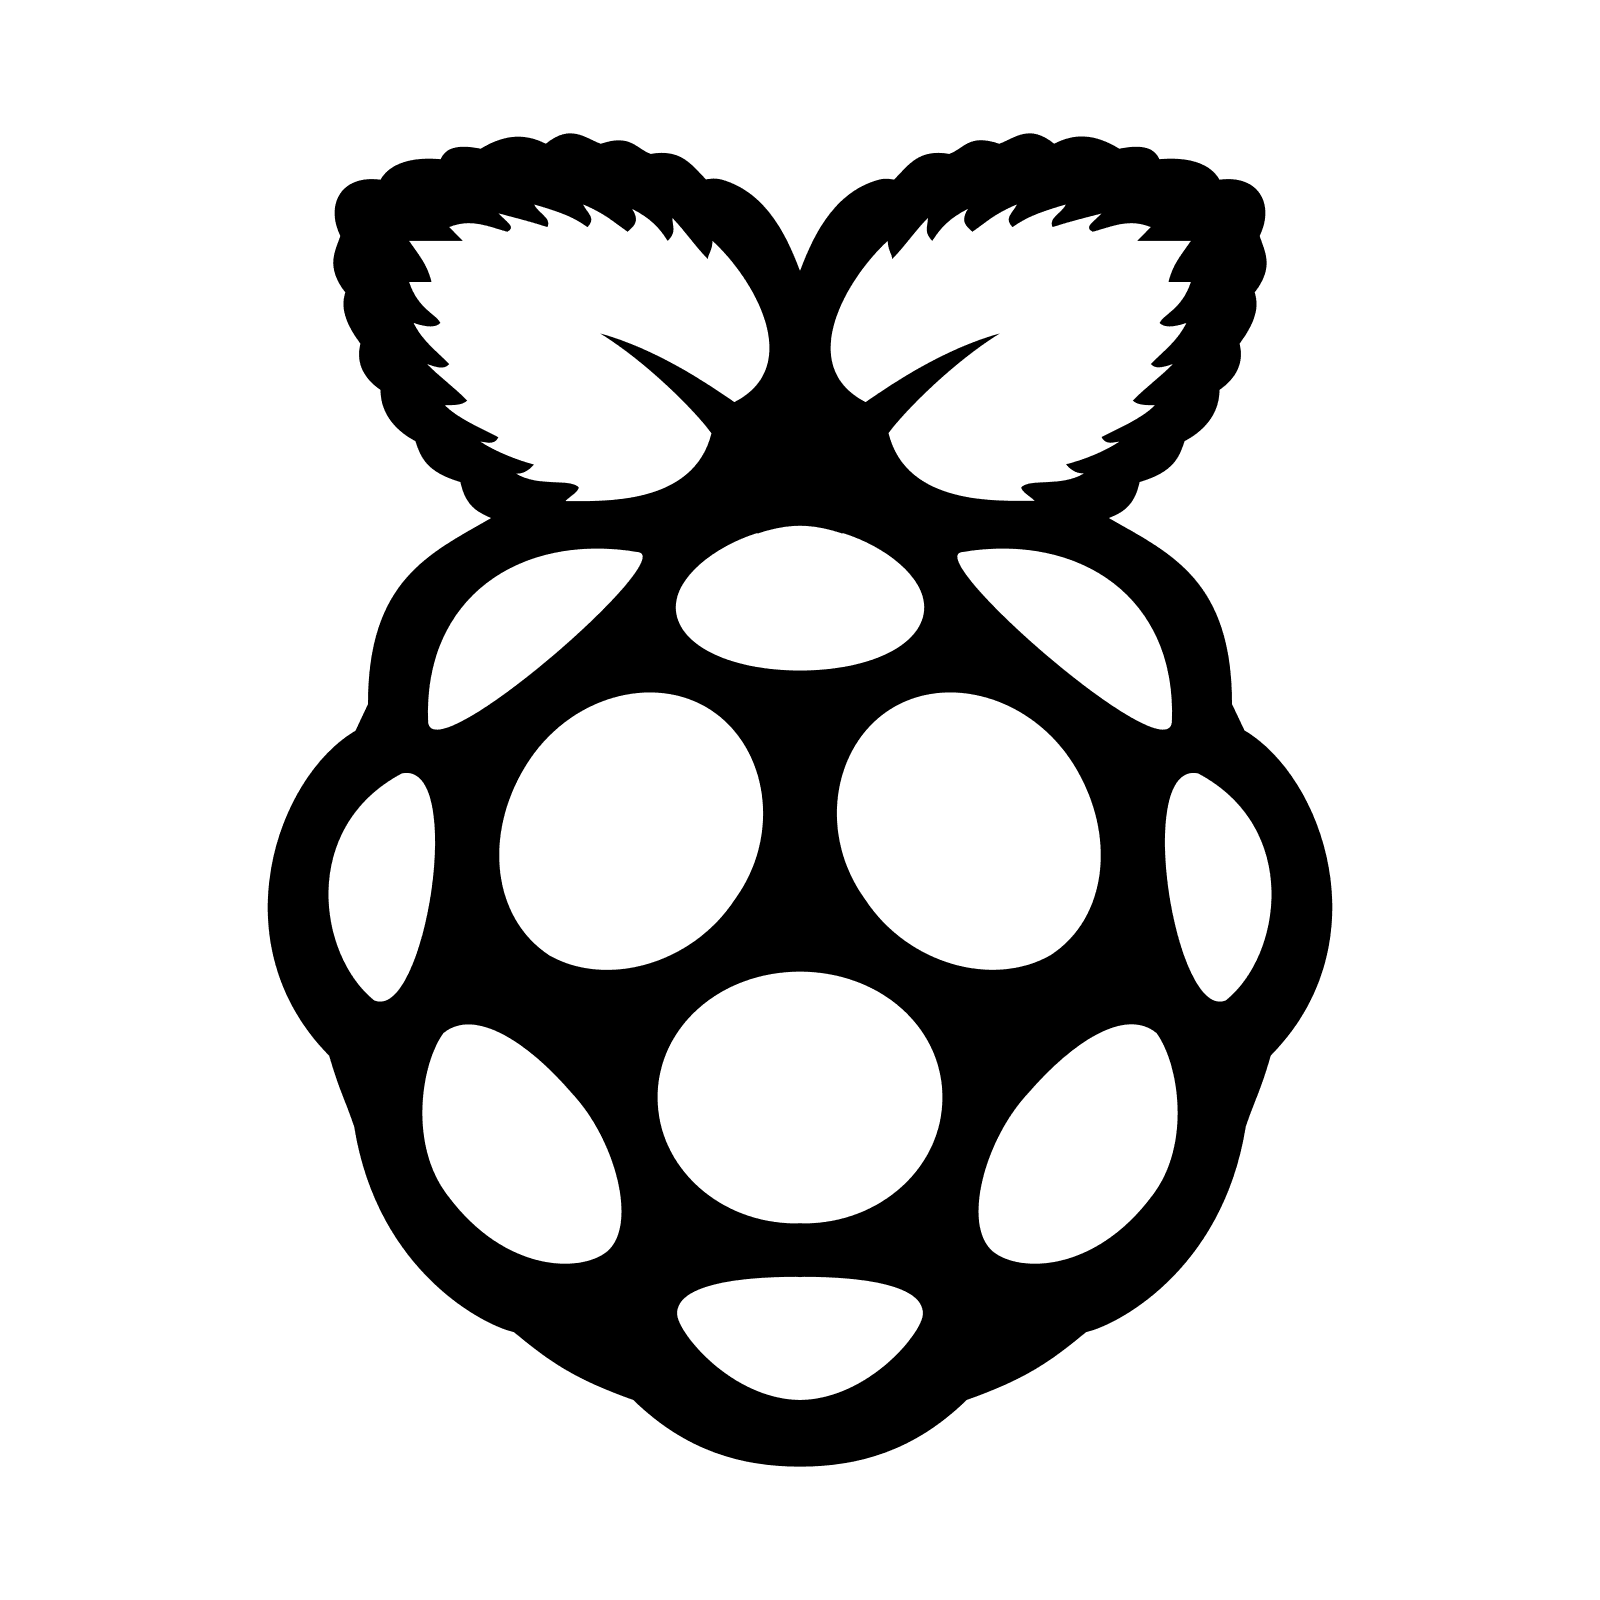 Pi drawing svg. Free raspberry icon png